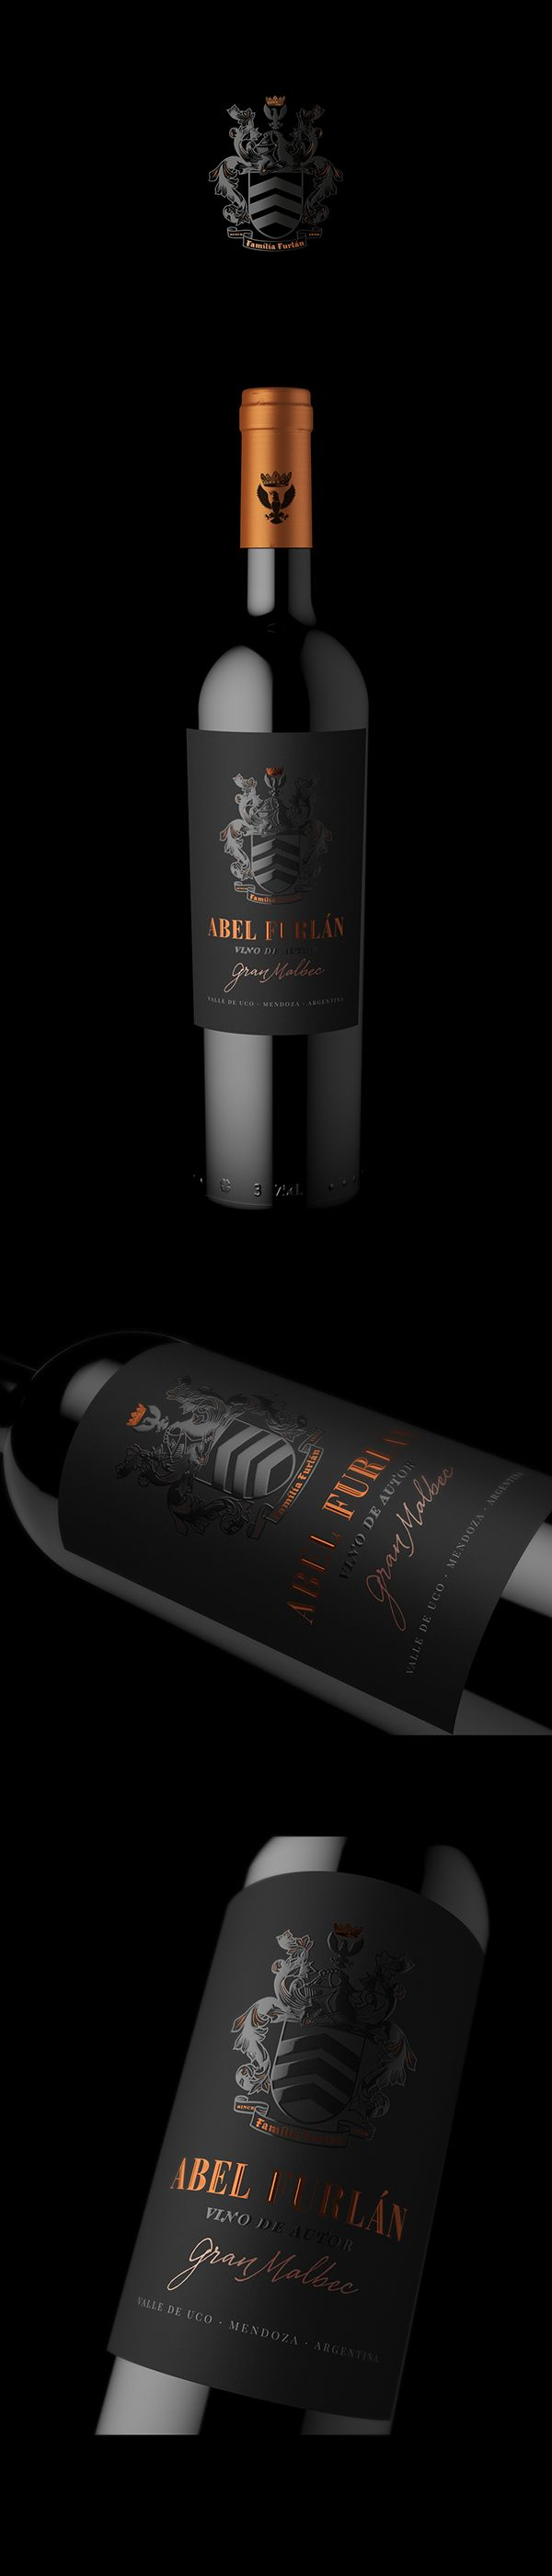 Packaging desgin for ABEL FURLAN Gran Reserva. By @estudioiuvaro